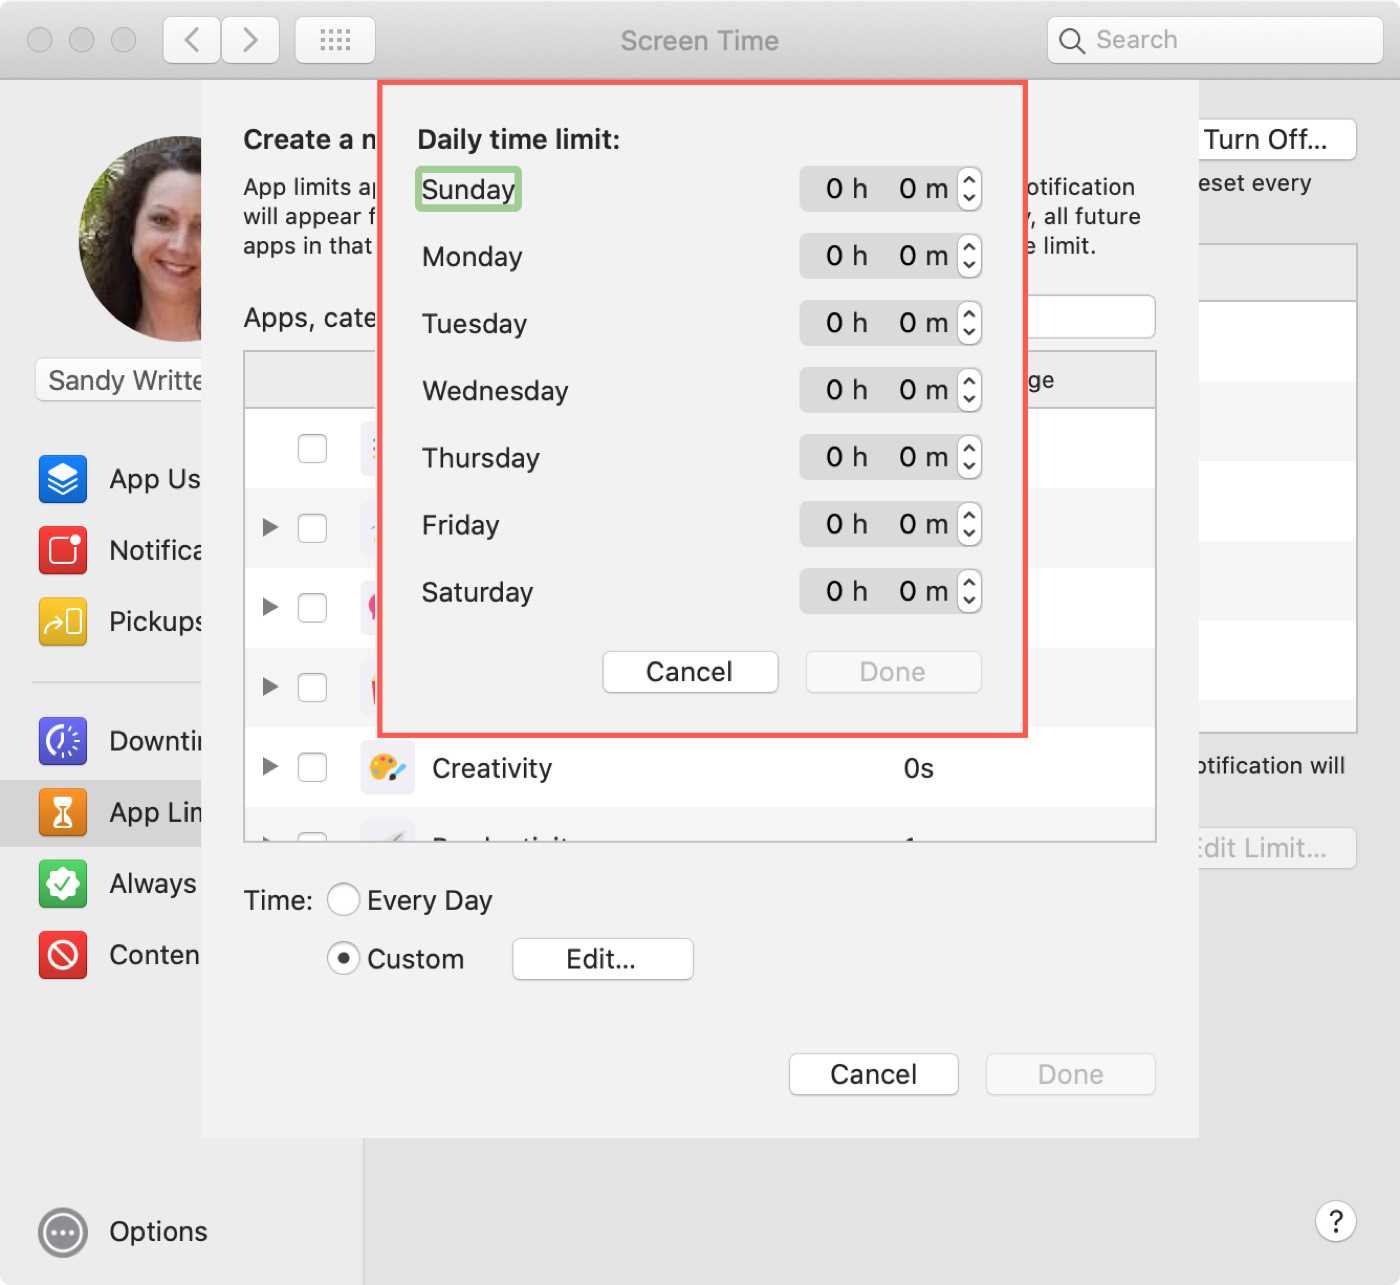 Screen Time App Time Limits on Mac